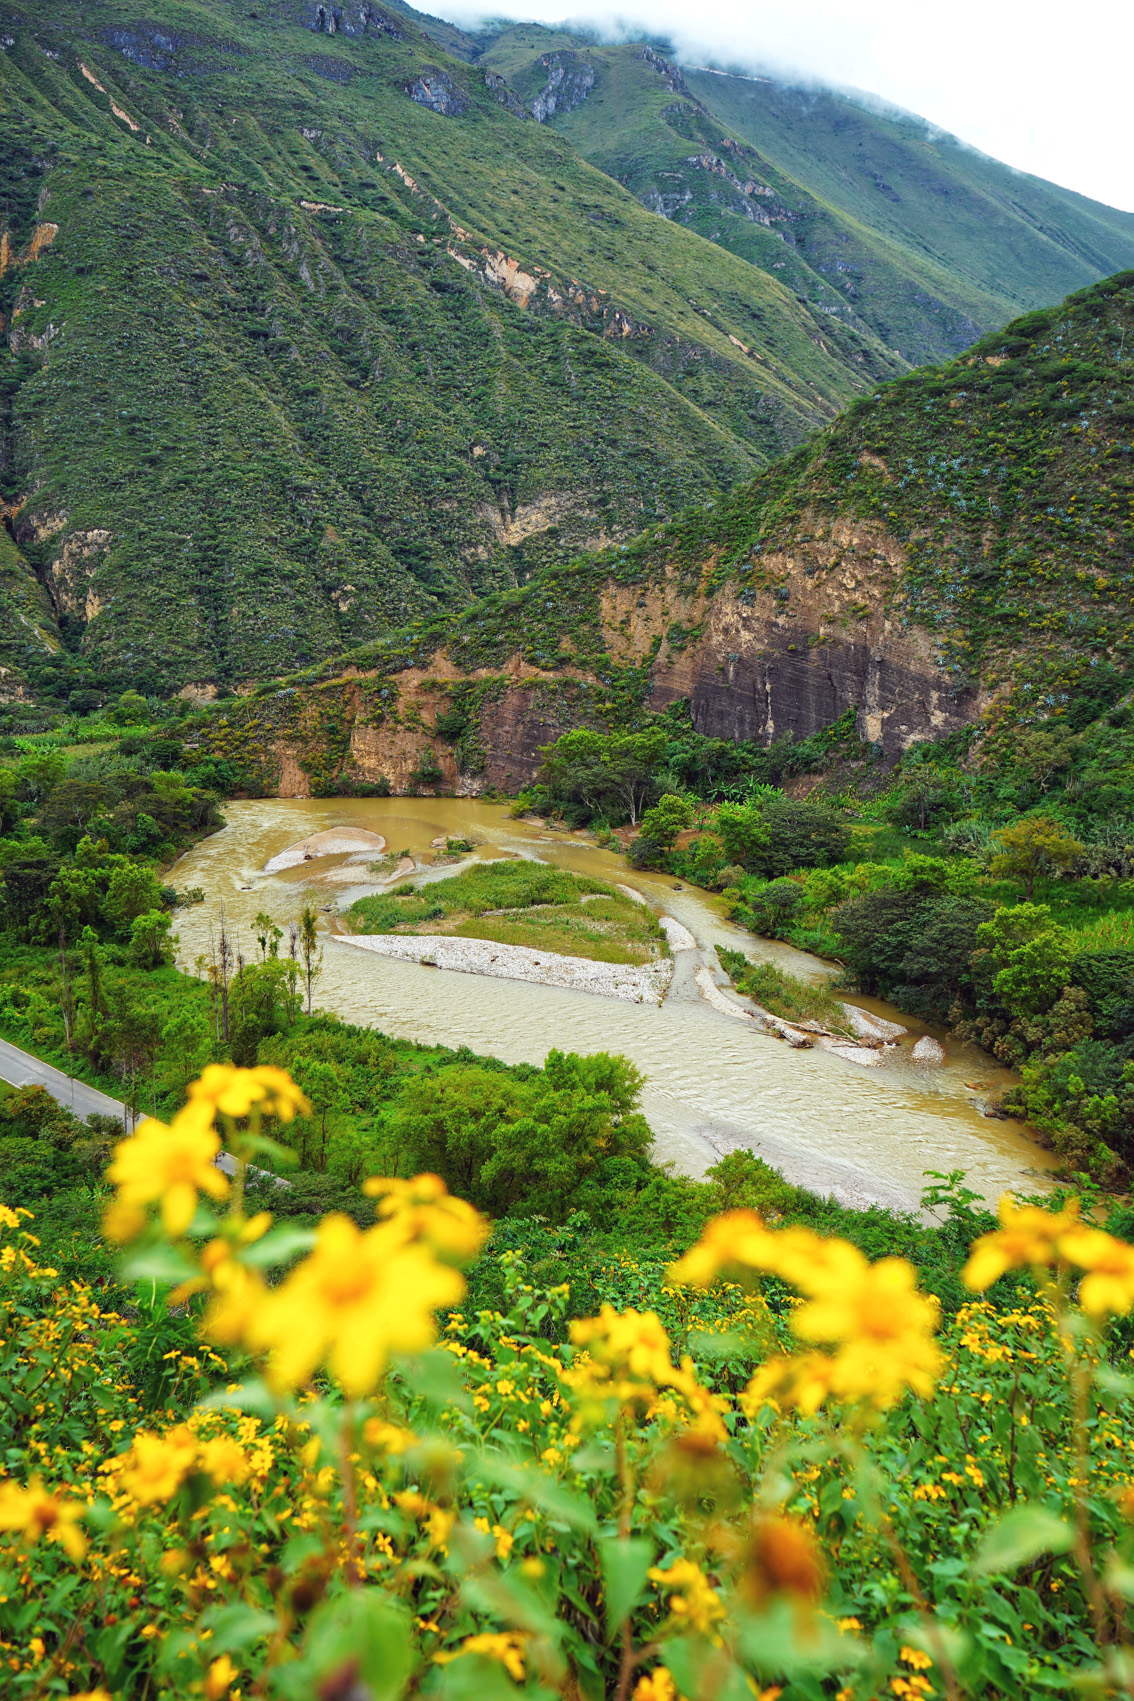 4-1 Lesser known places in Peru: Chachapoyas - a natural paradise to discover.